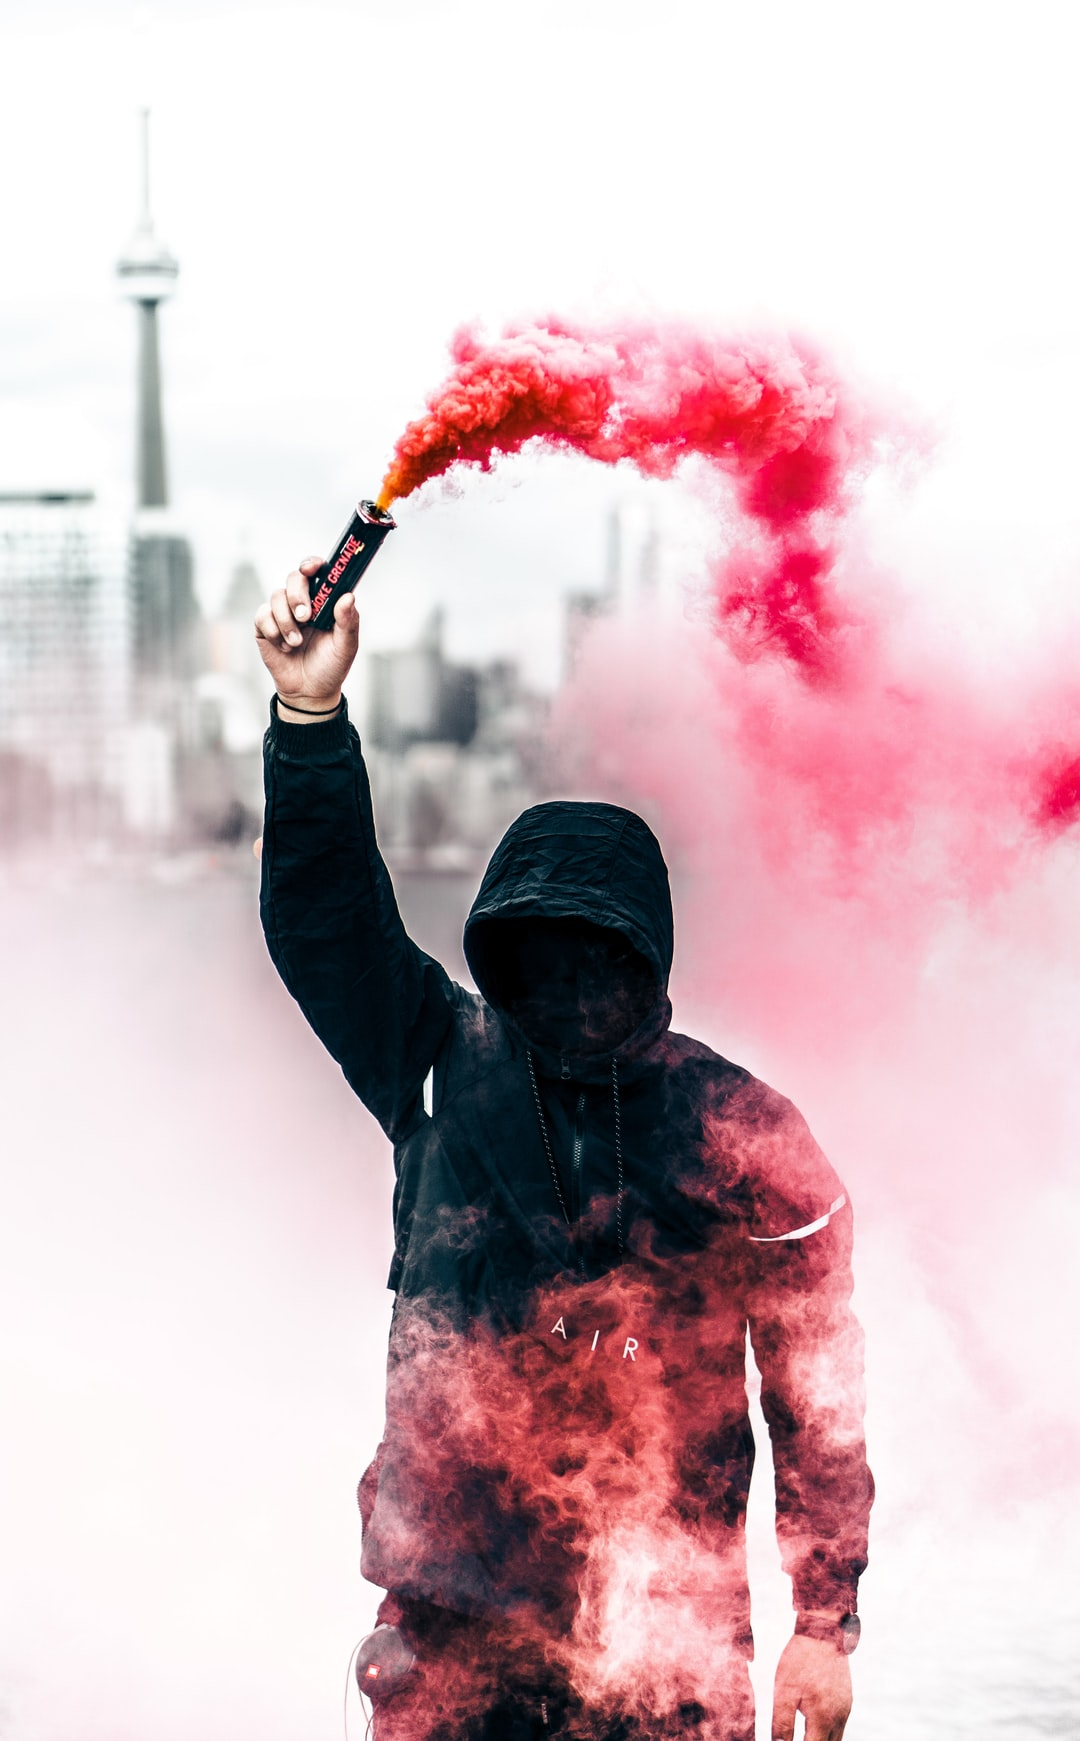 Person with pink smoke grenade